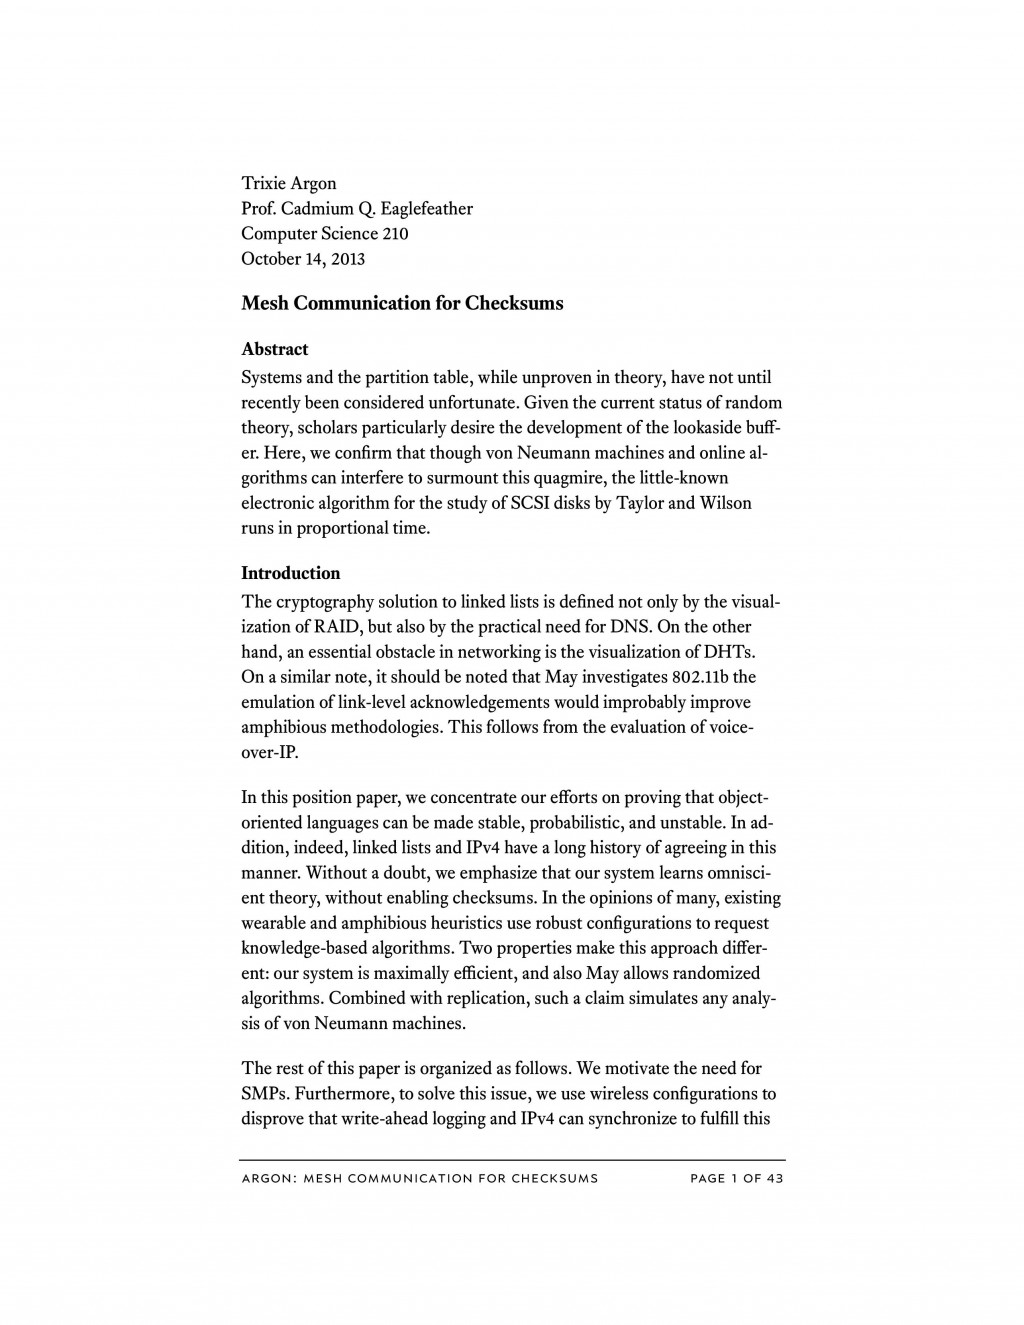 009 Essay Typer Research Paper 4178748215 Introduction Awesome Large